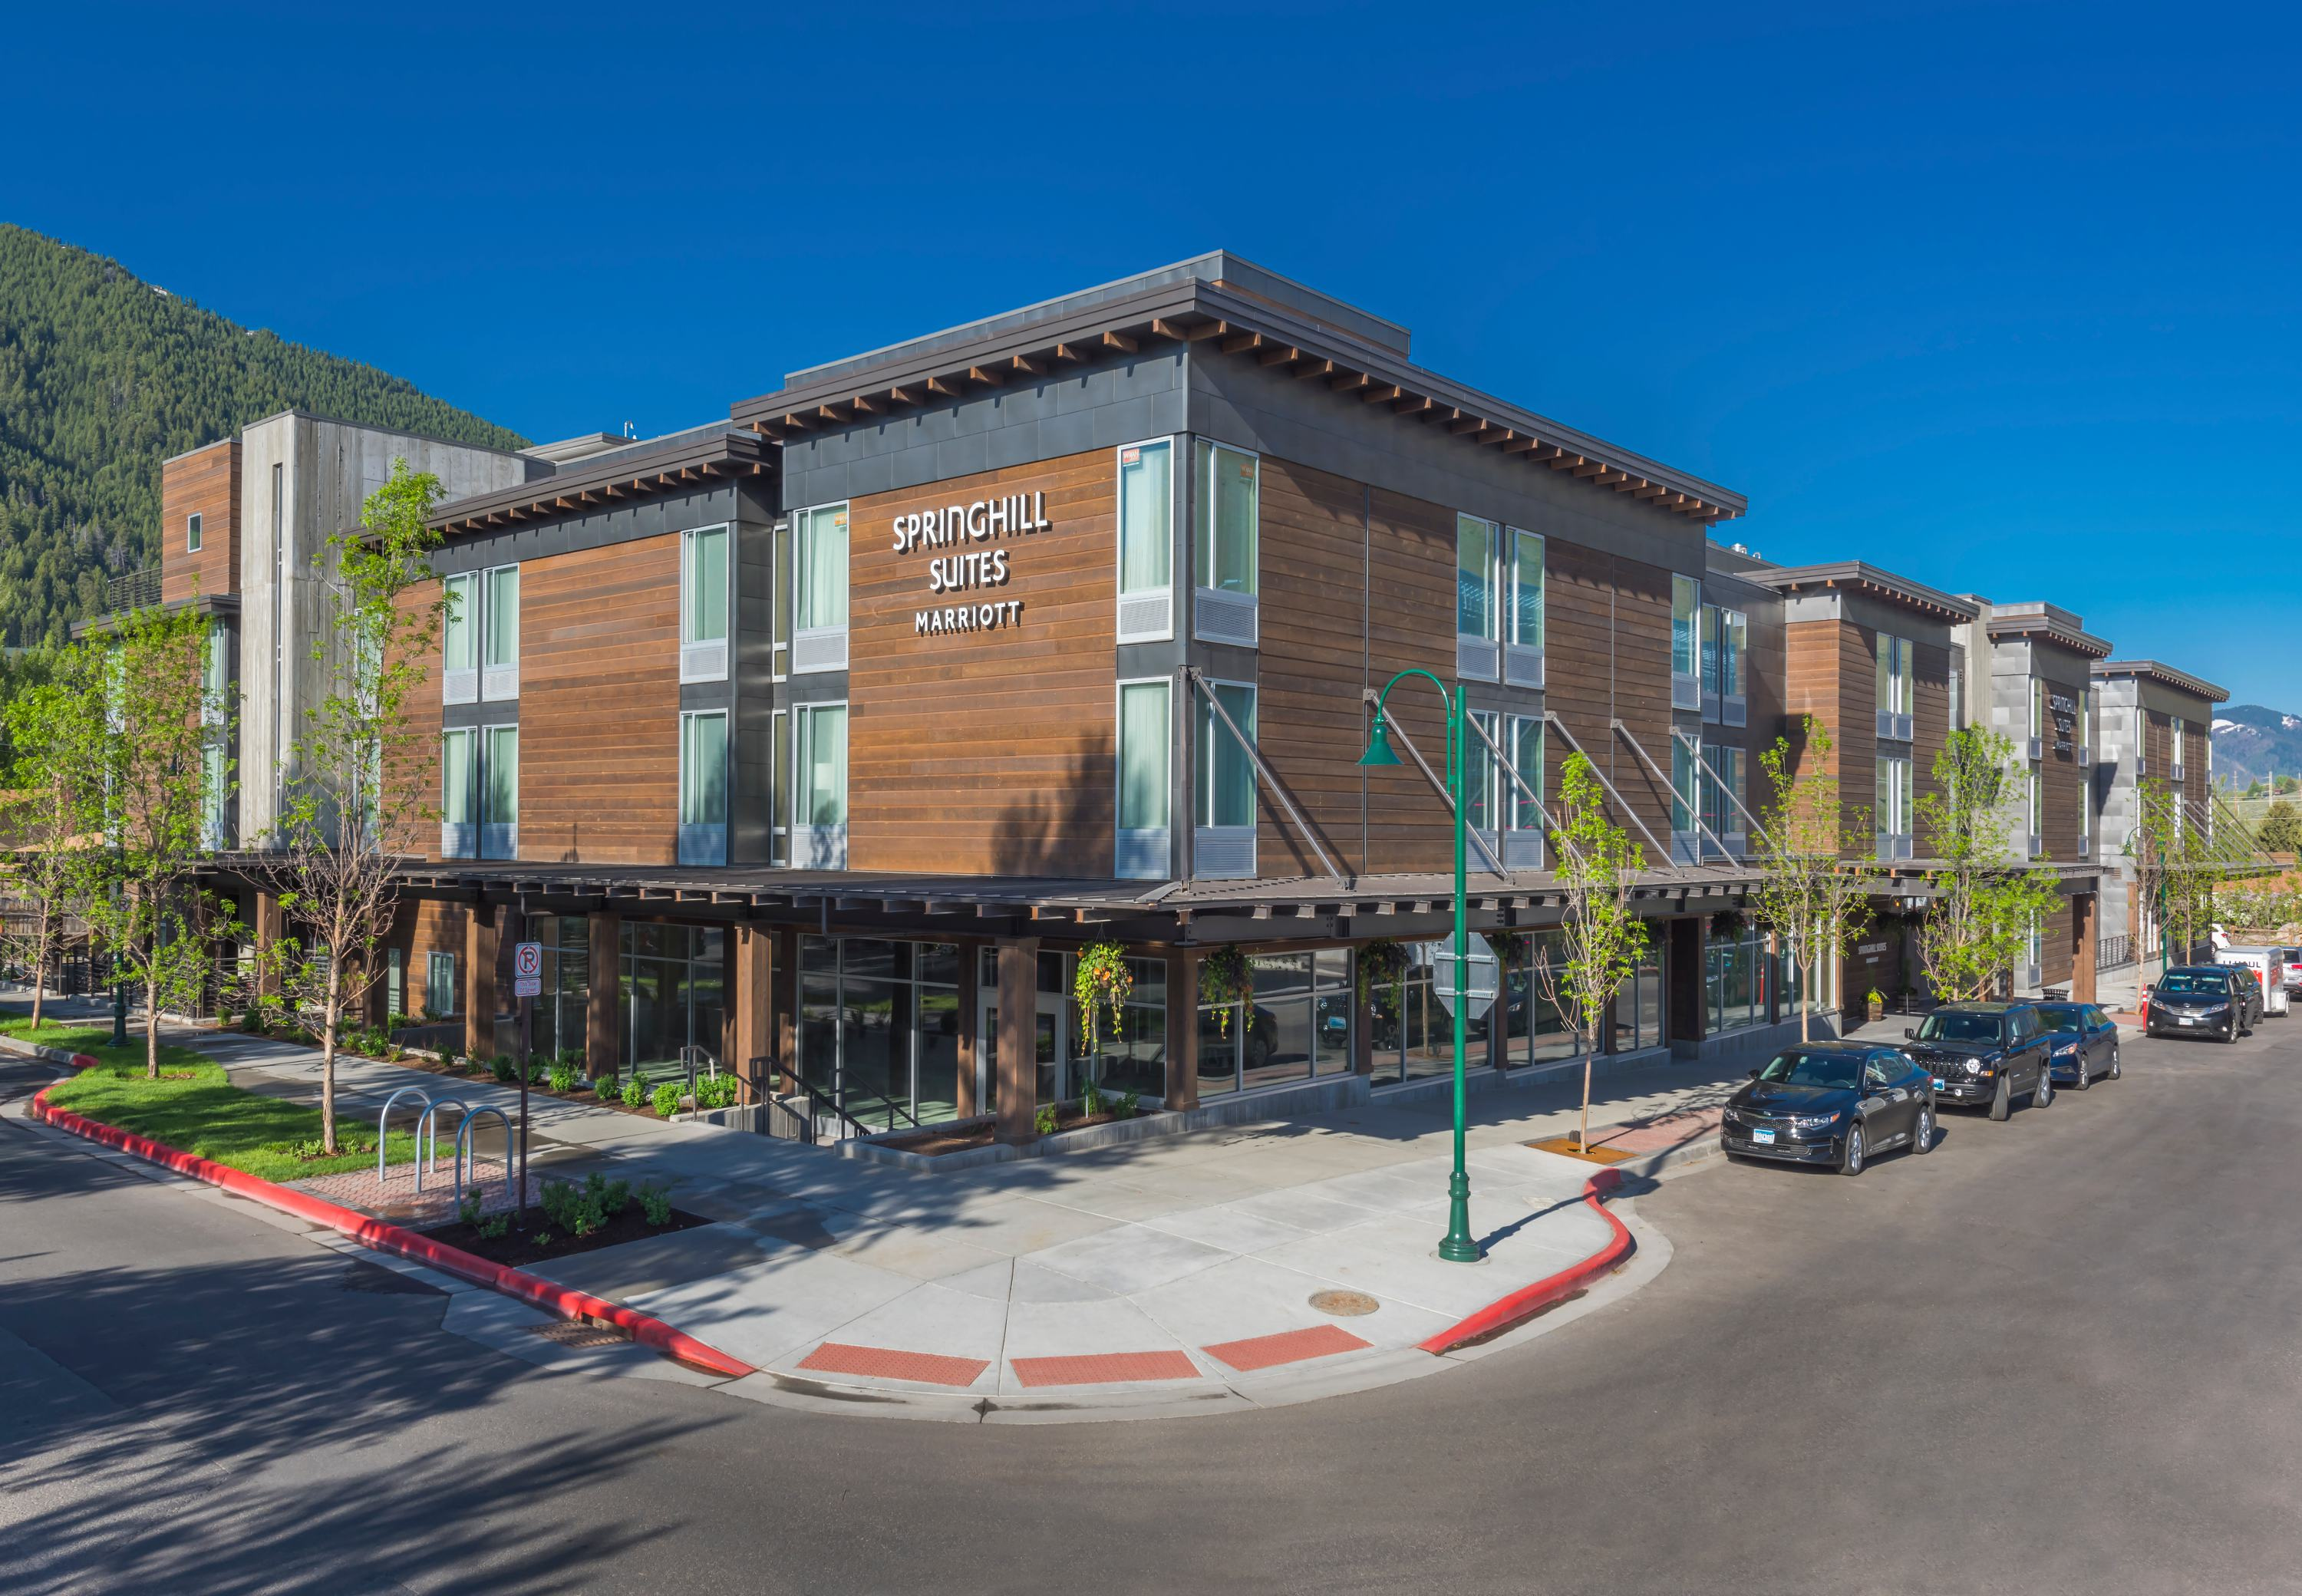 SpringHill Suites by Marriott Jackson Hole - Jackson, WY 83001 - (307)201-5320 | ShowMeLocal.com